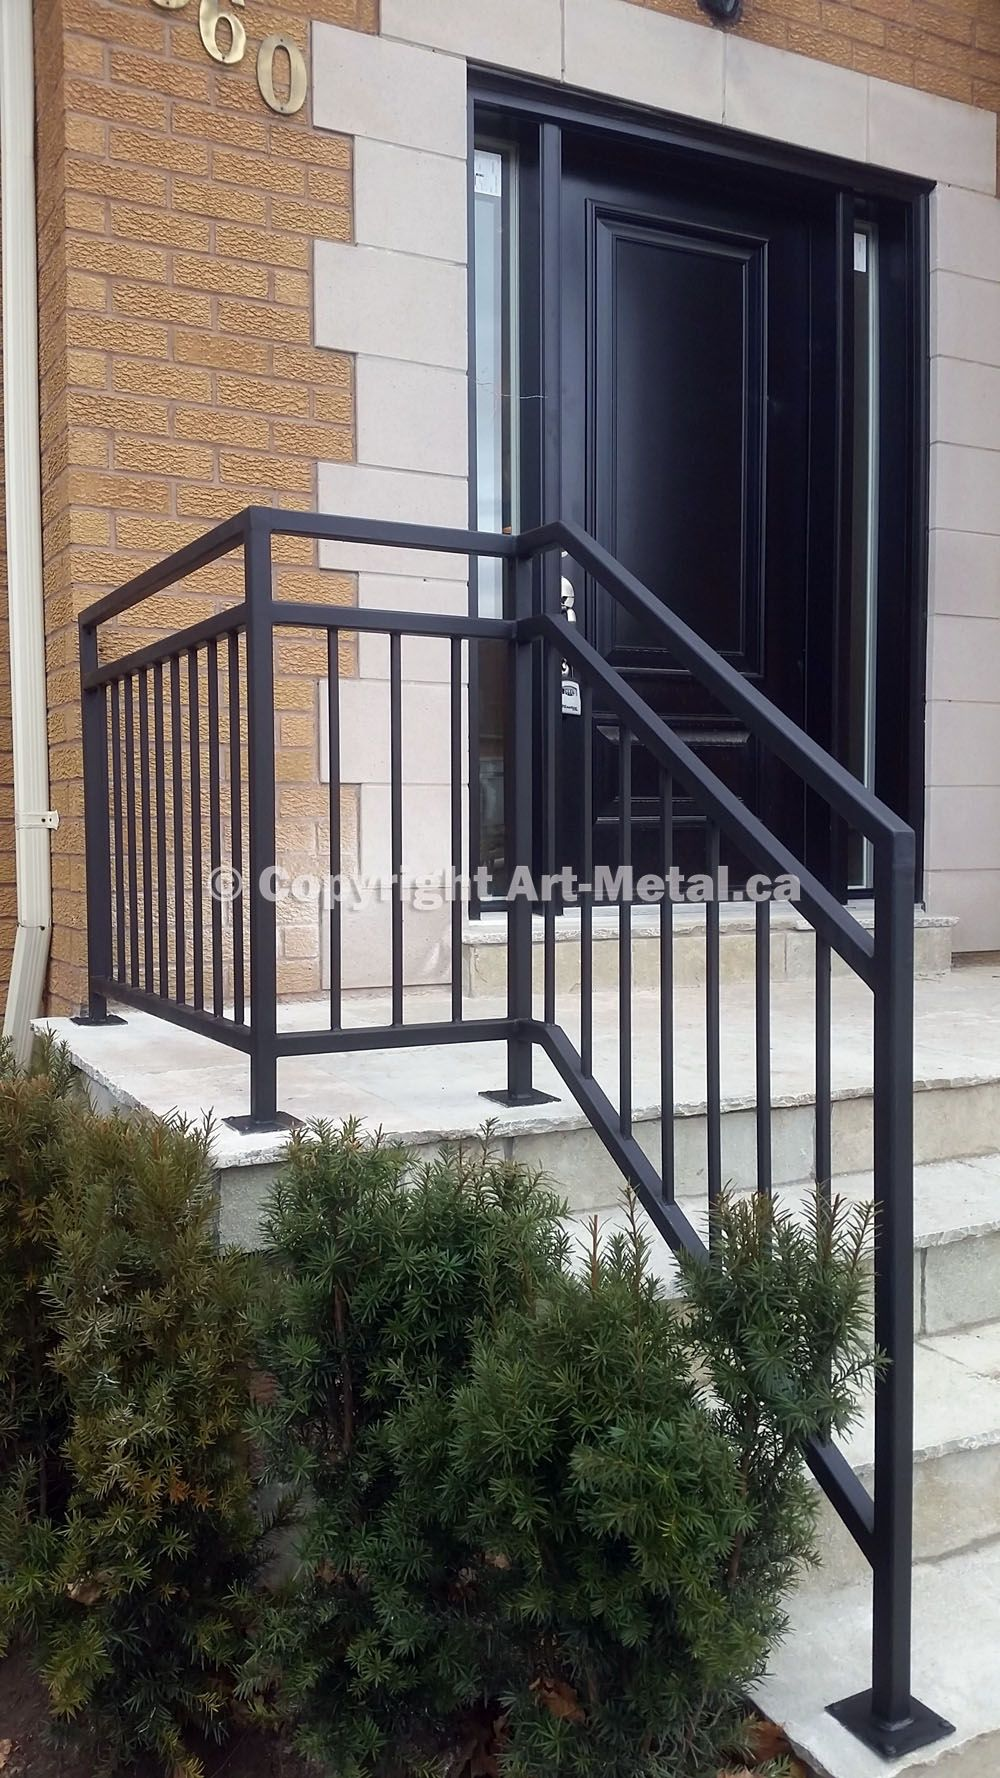 Exterior railing 102 for the home pinterest porch for Exterior balcony railing design